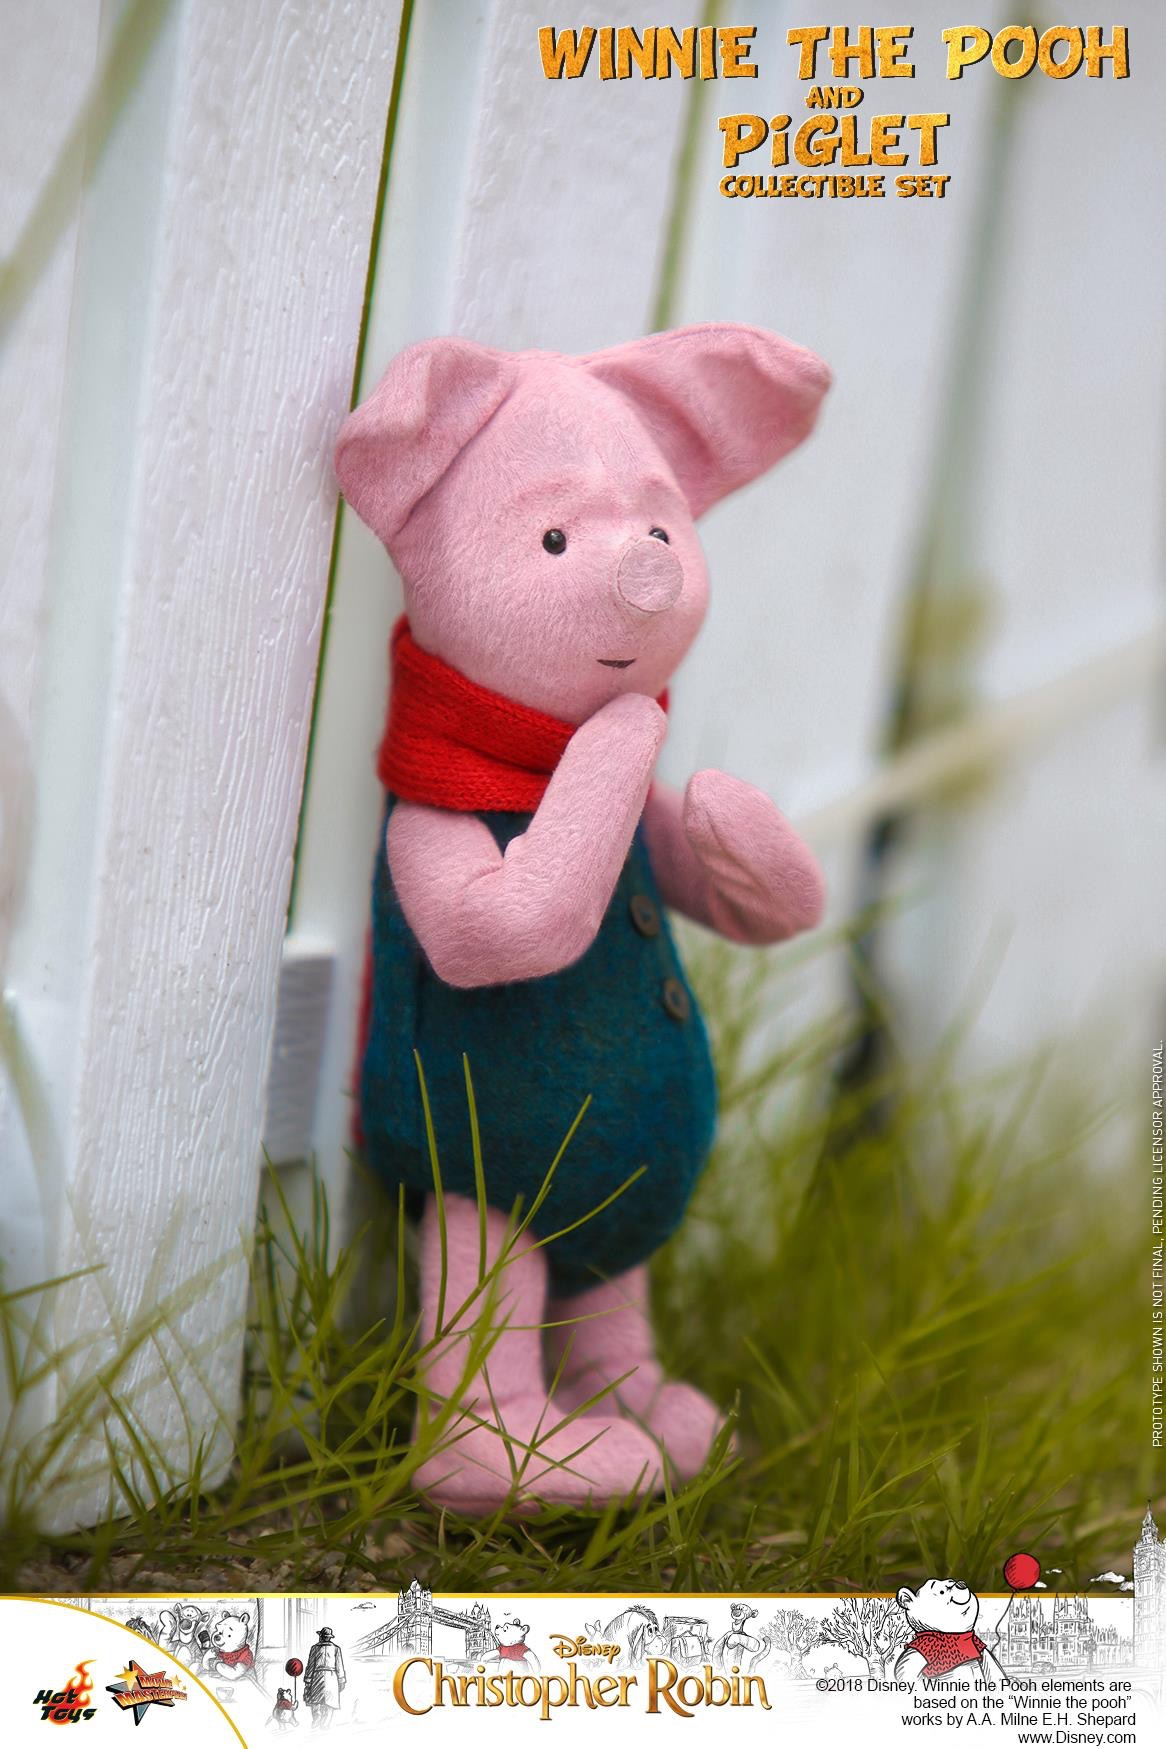 Christopher Robin Winnie The Pooh And Piglet Collectible